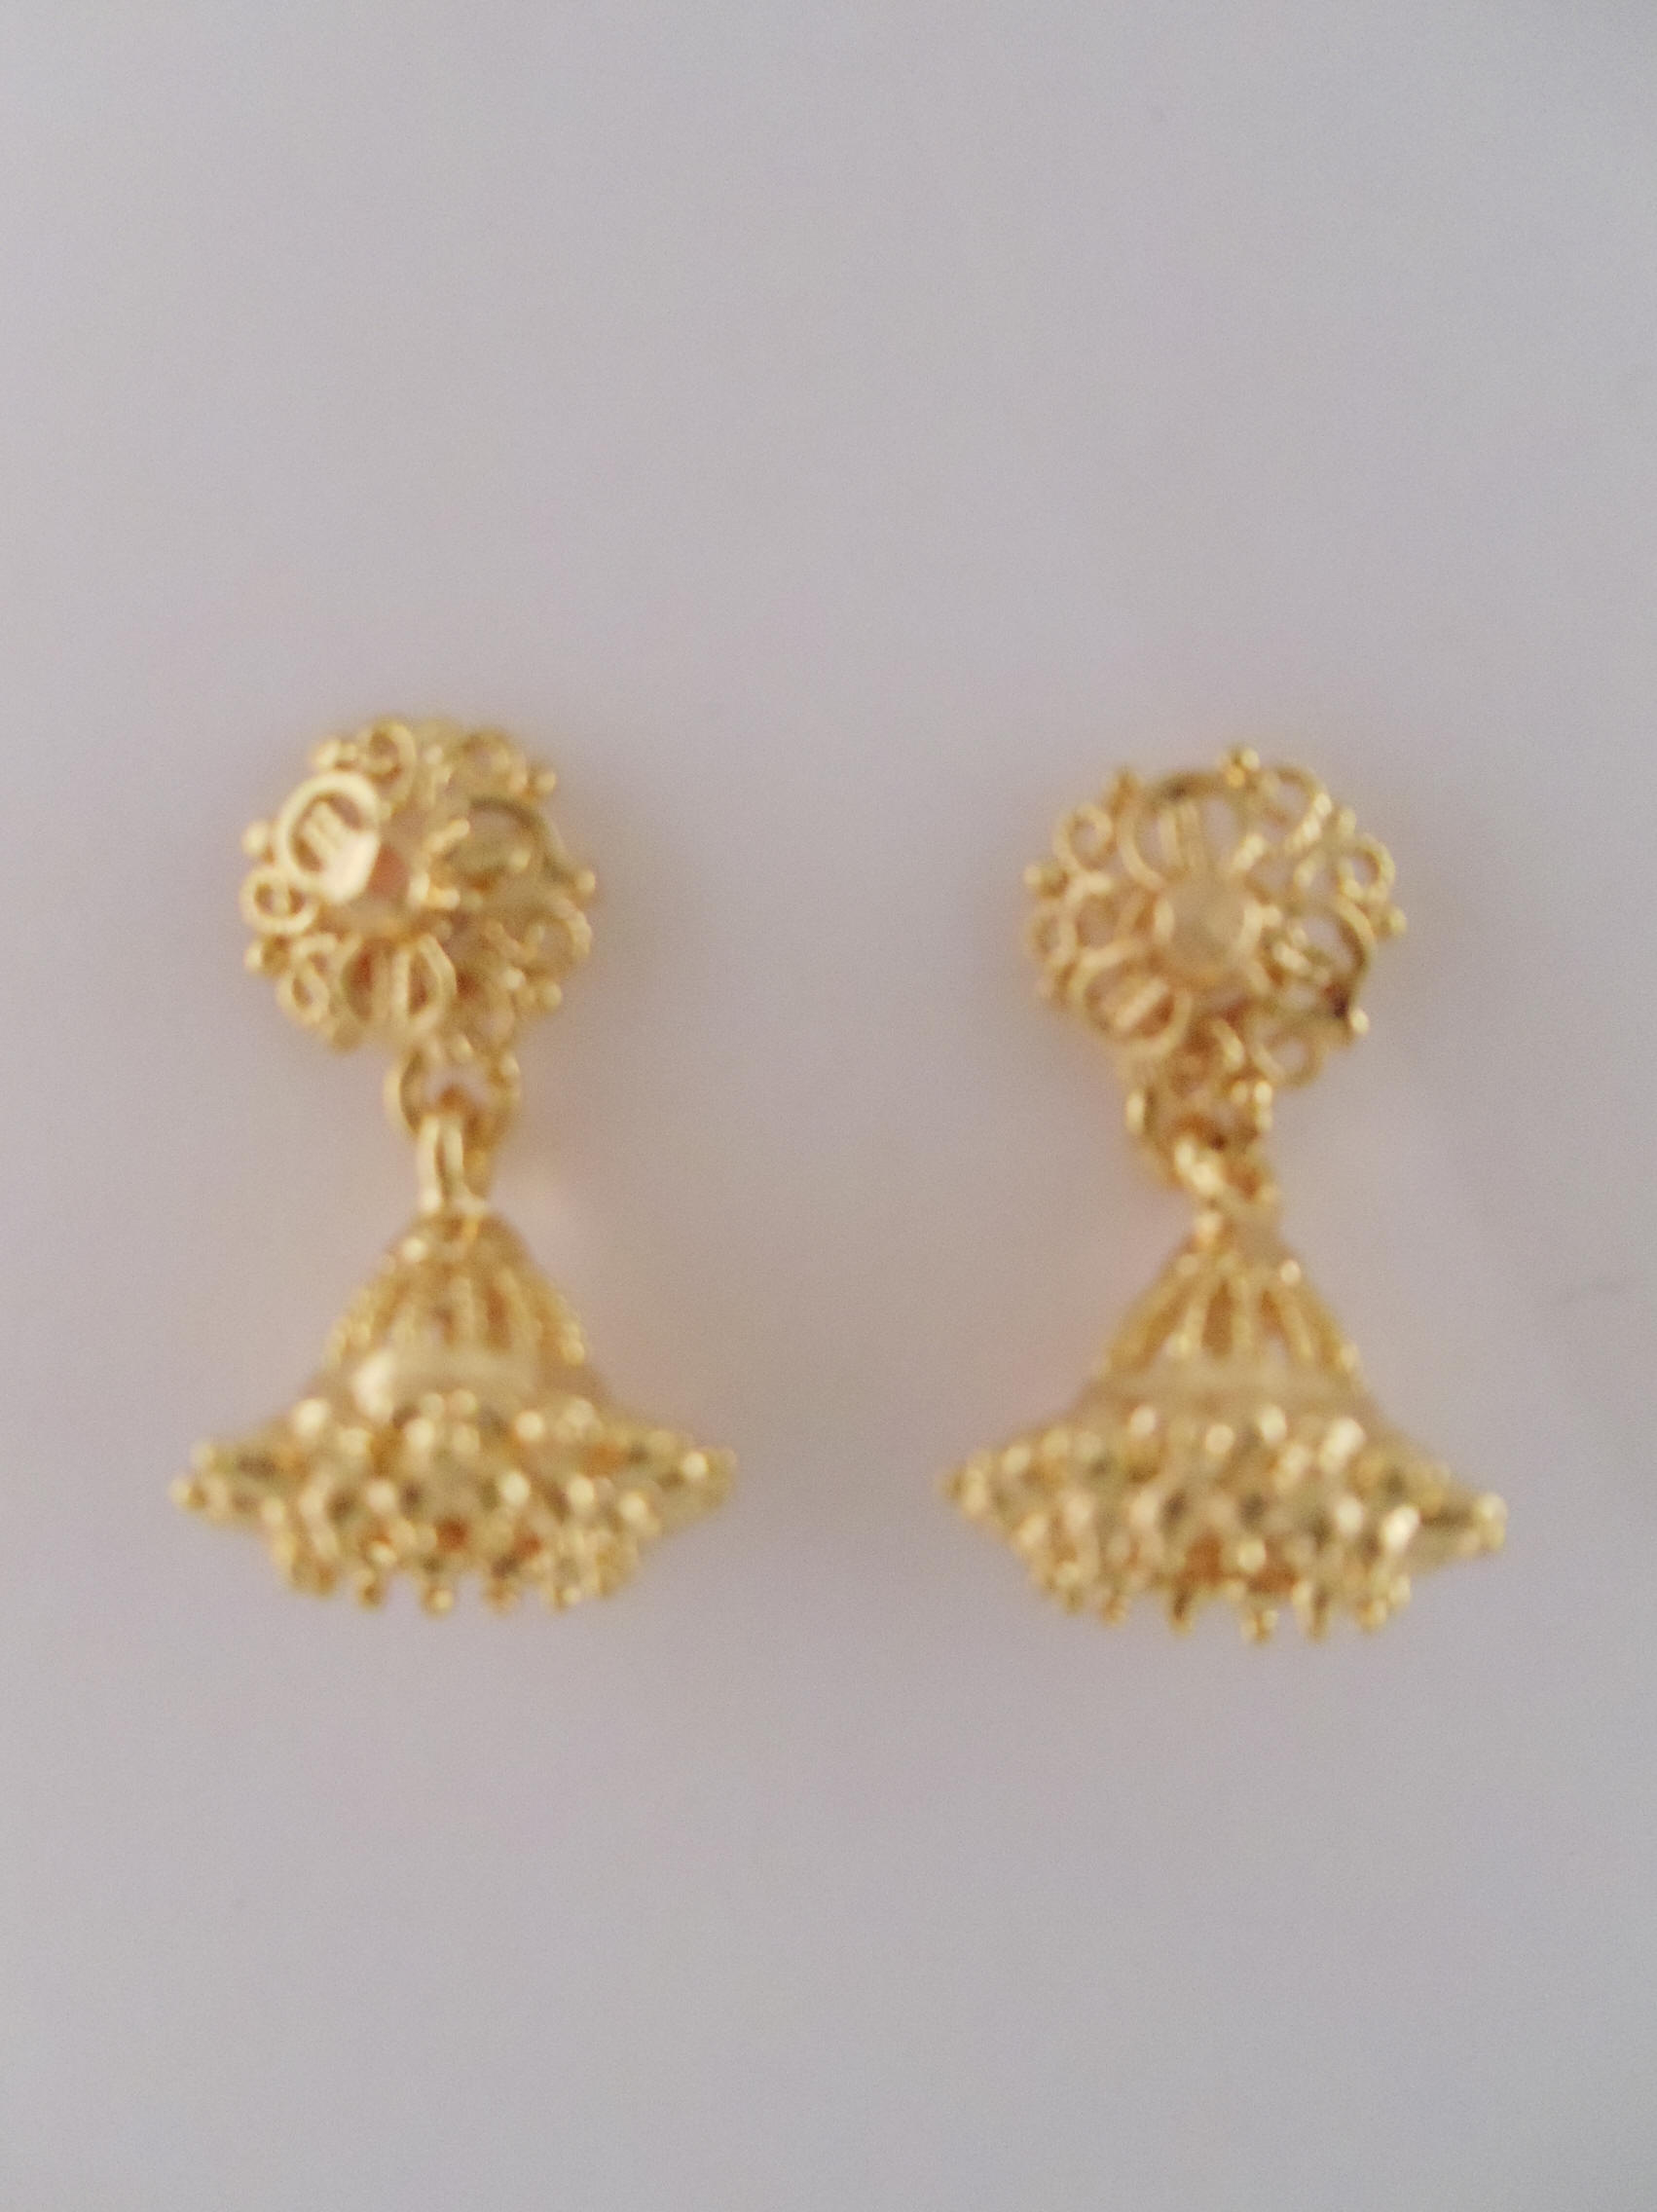 1gm Gold Earrings